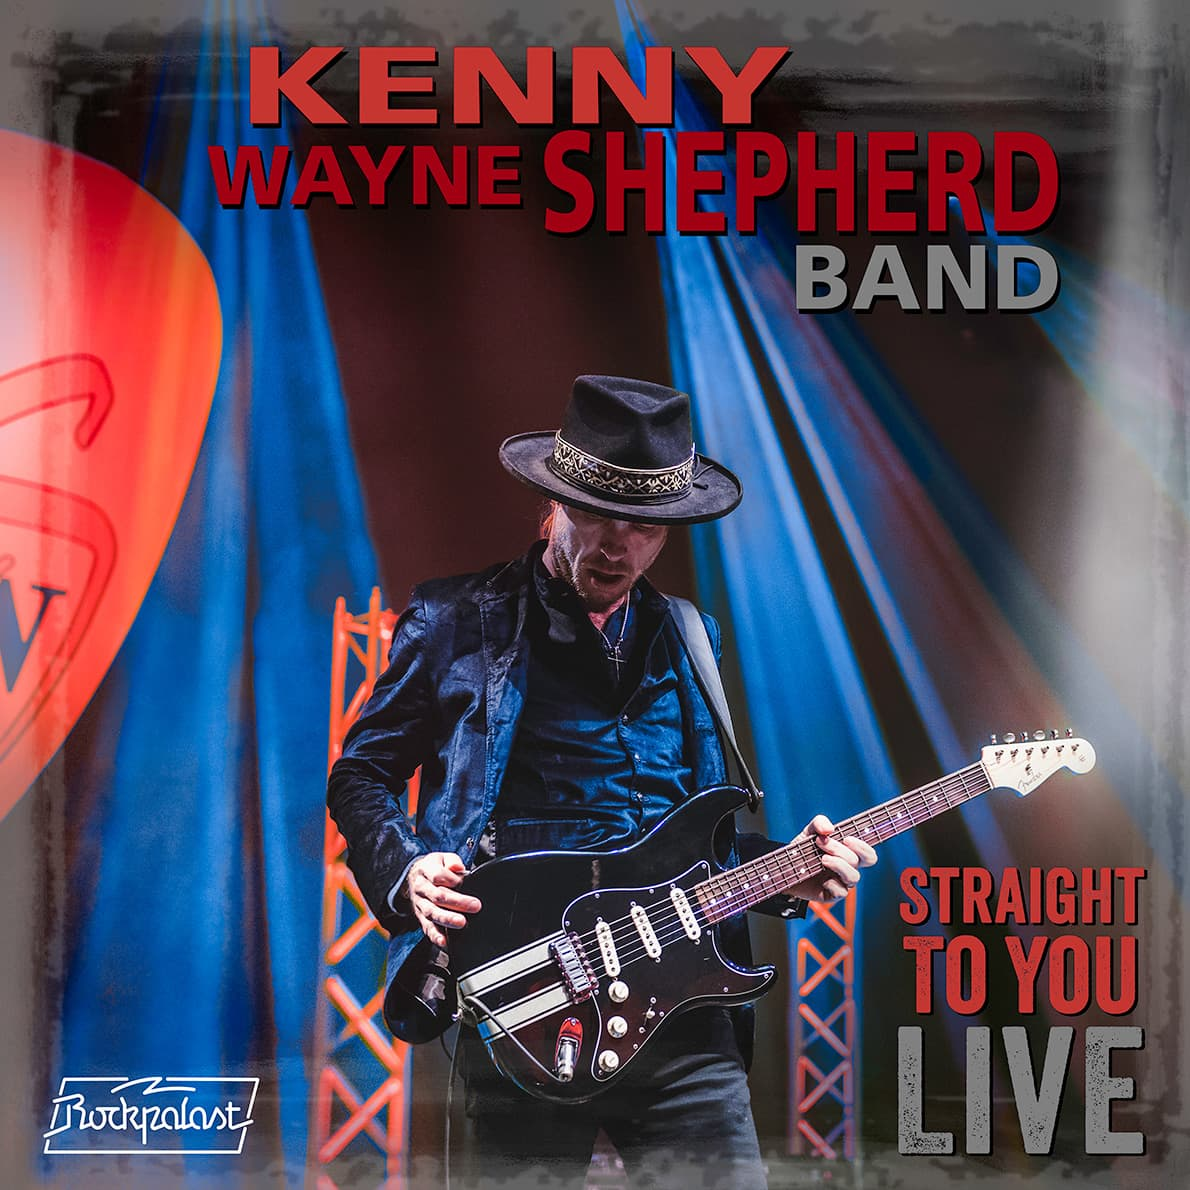 Kenny Wayne Shepherd Band - Straight To You: Live